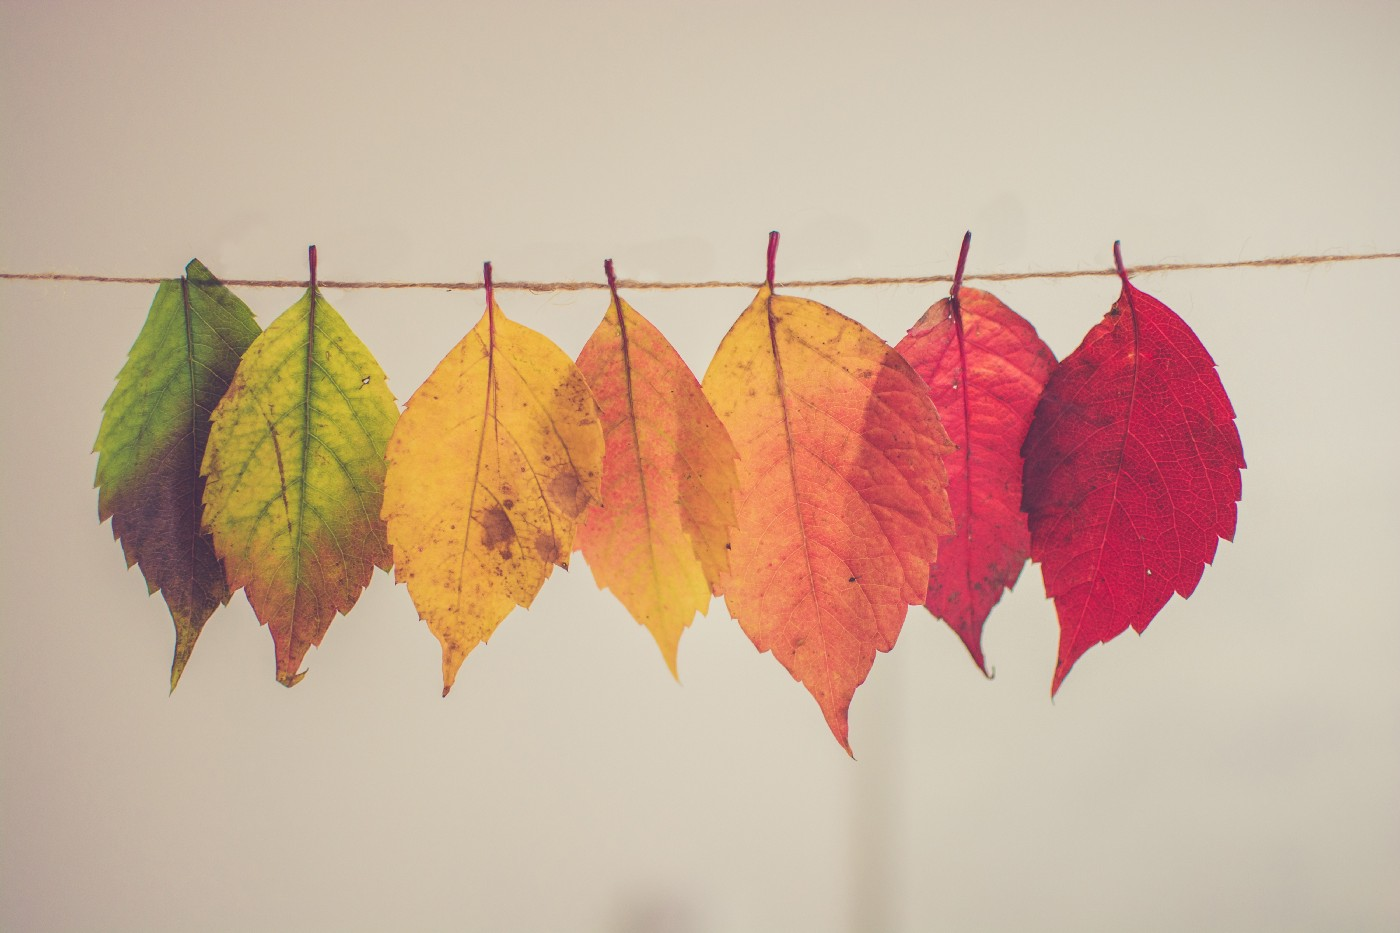 Different-colored Autumn leaves hanging from a thread